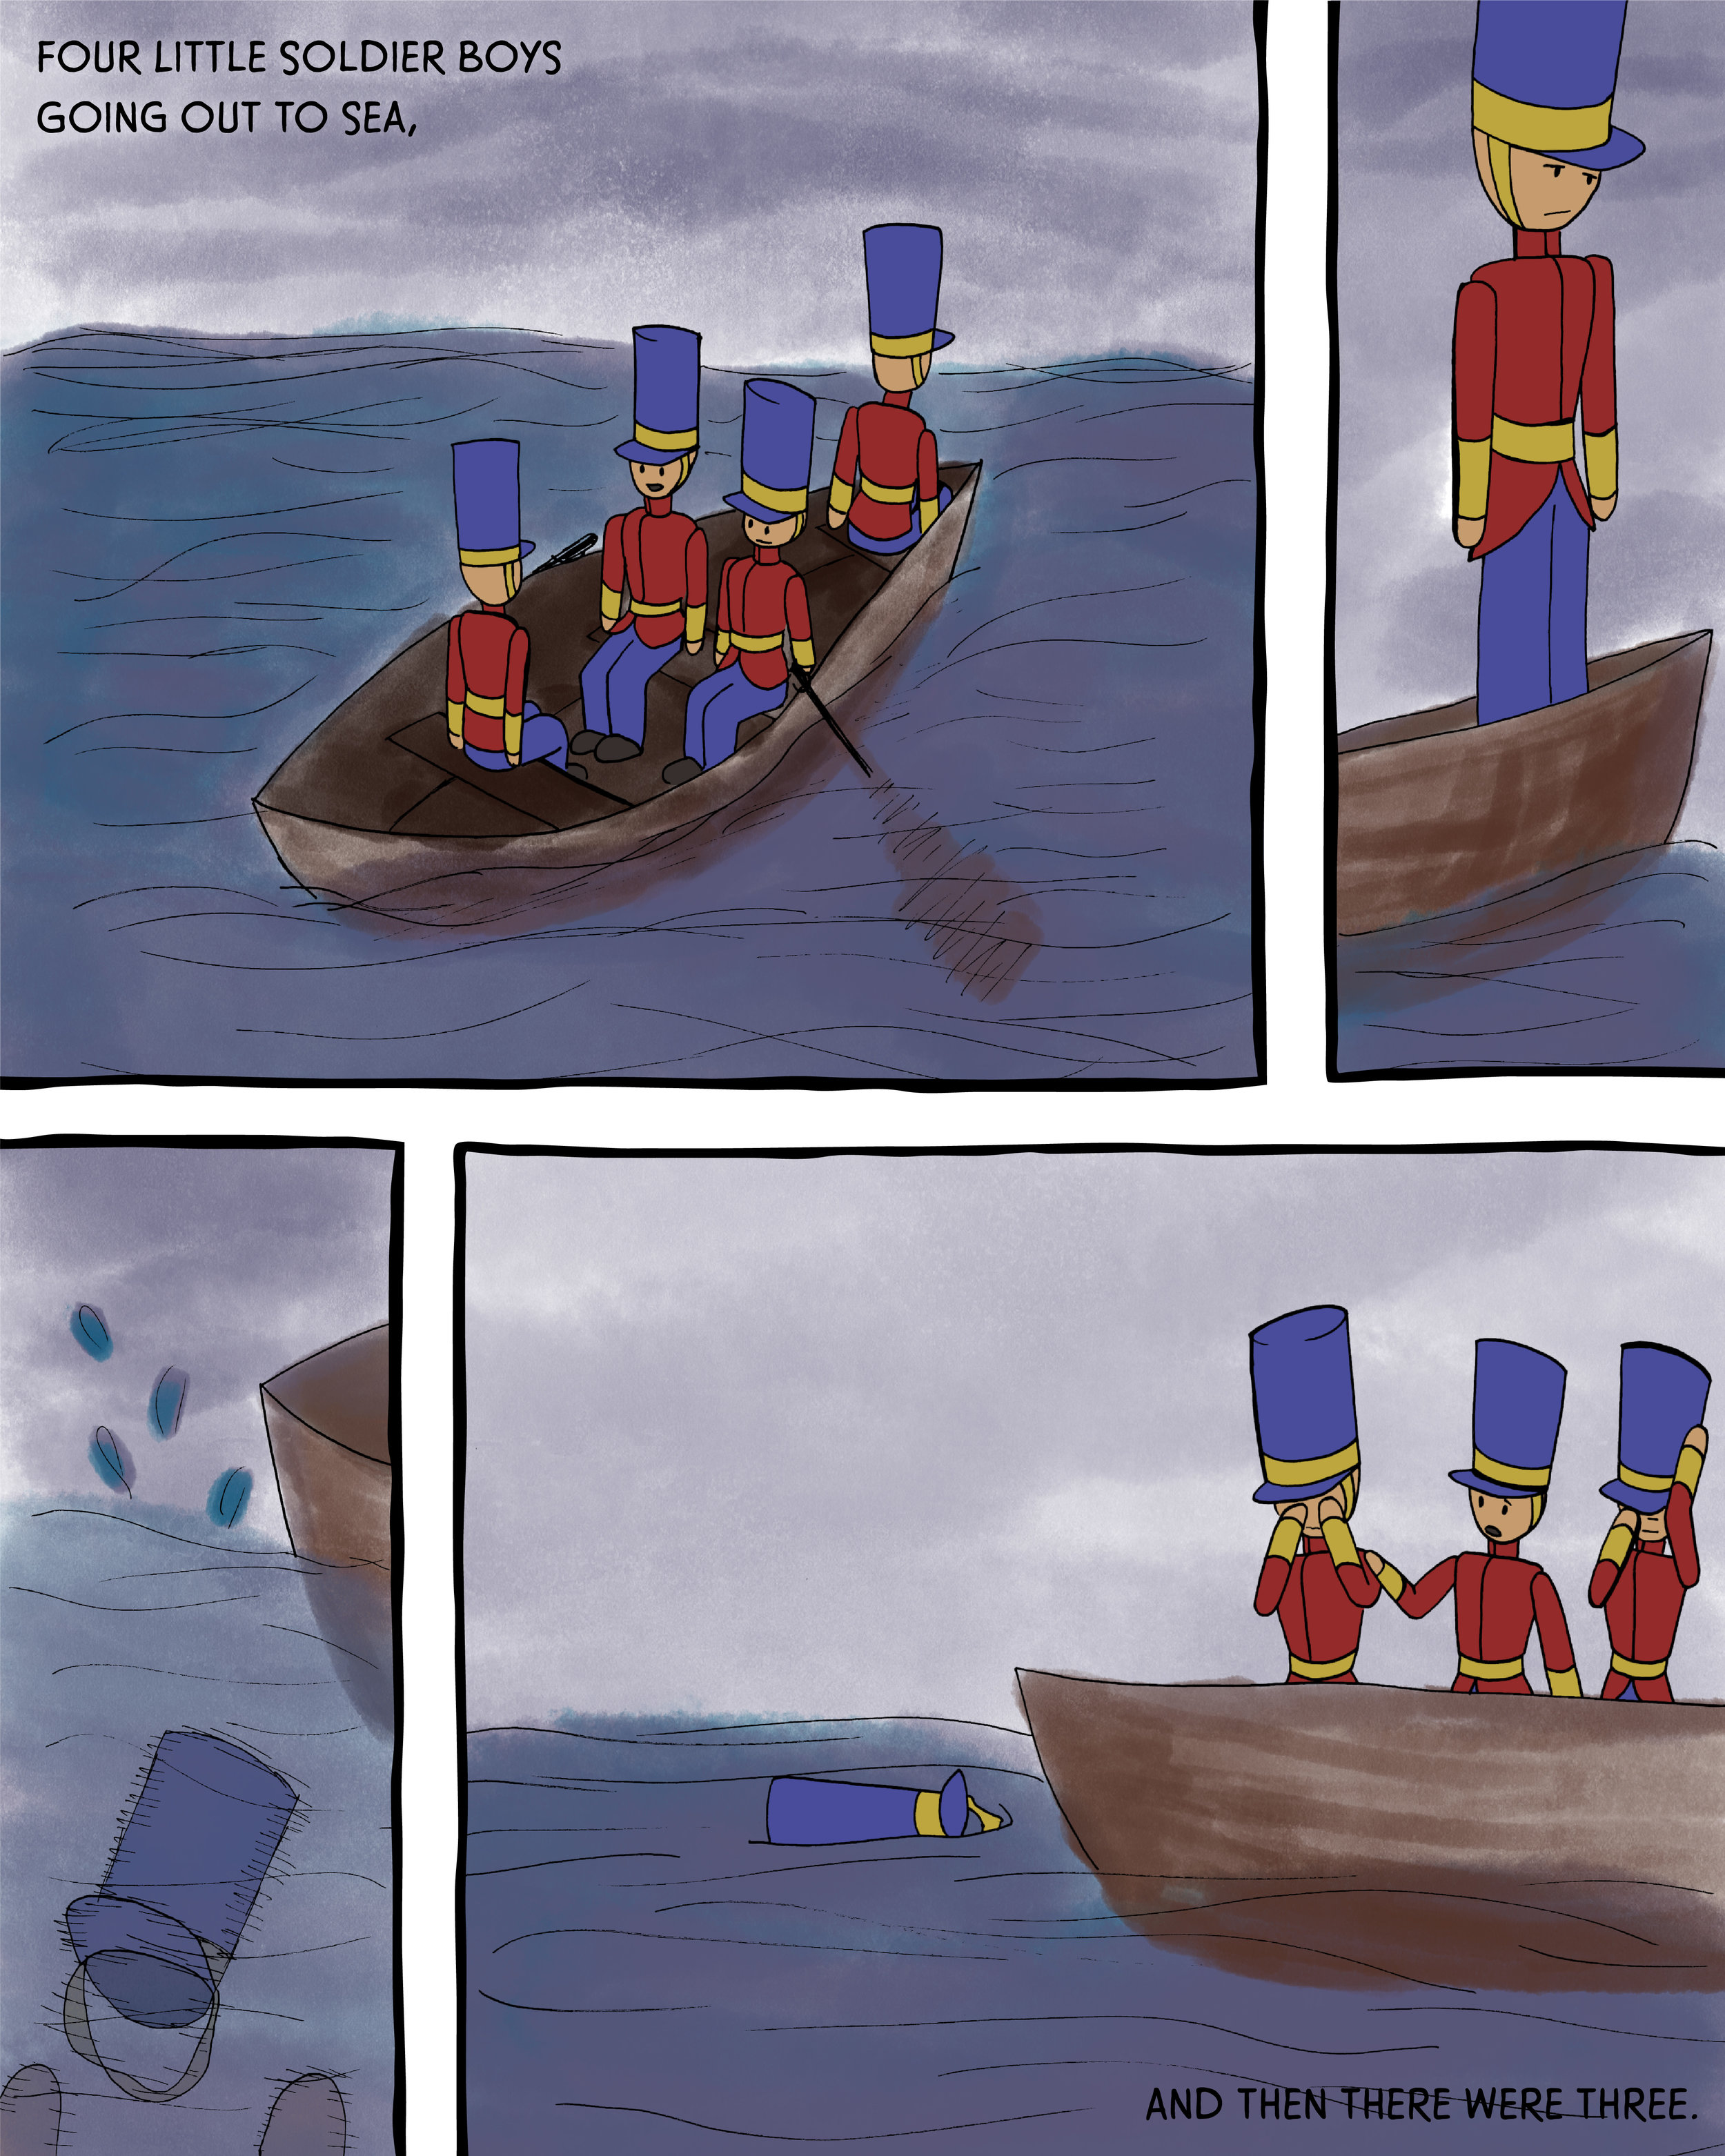 7 Going Out to Sea-01.jpg